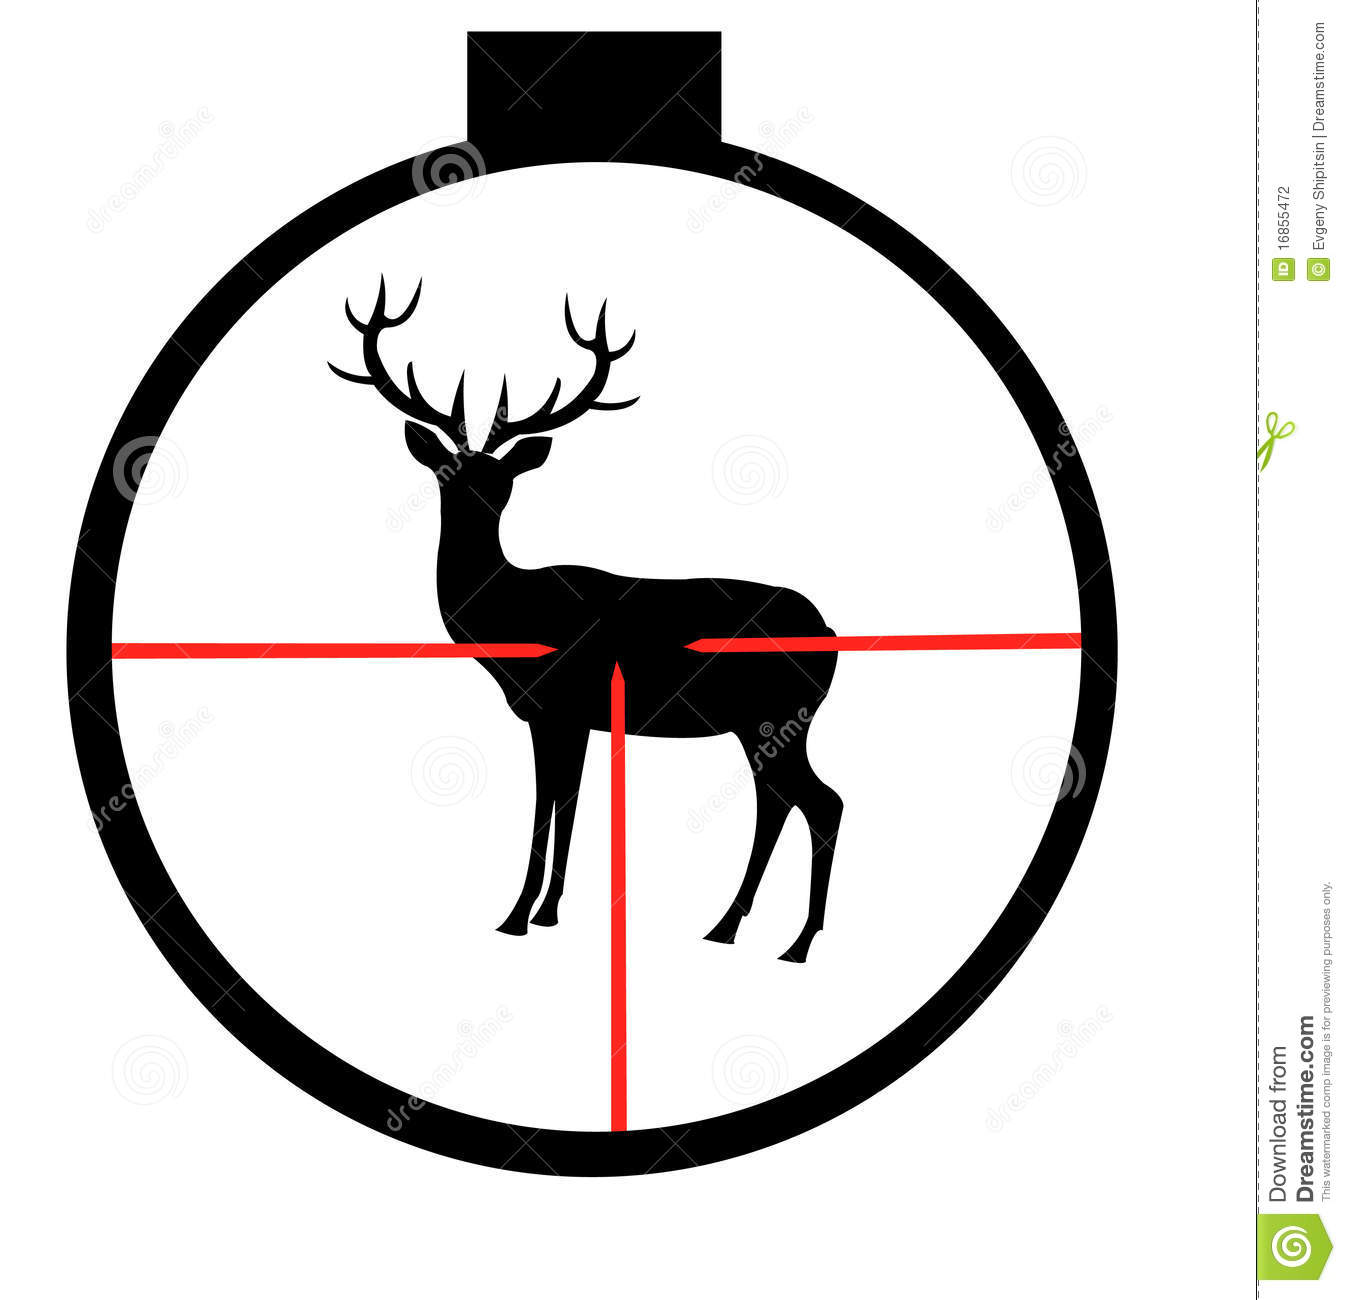 clipartlook. Hunting clipart clip art